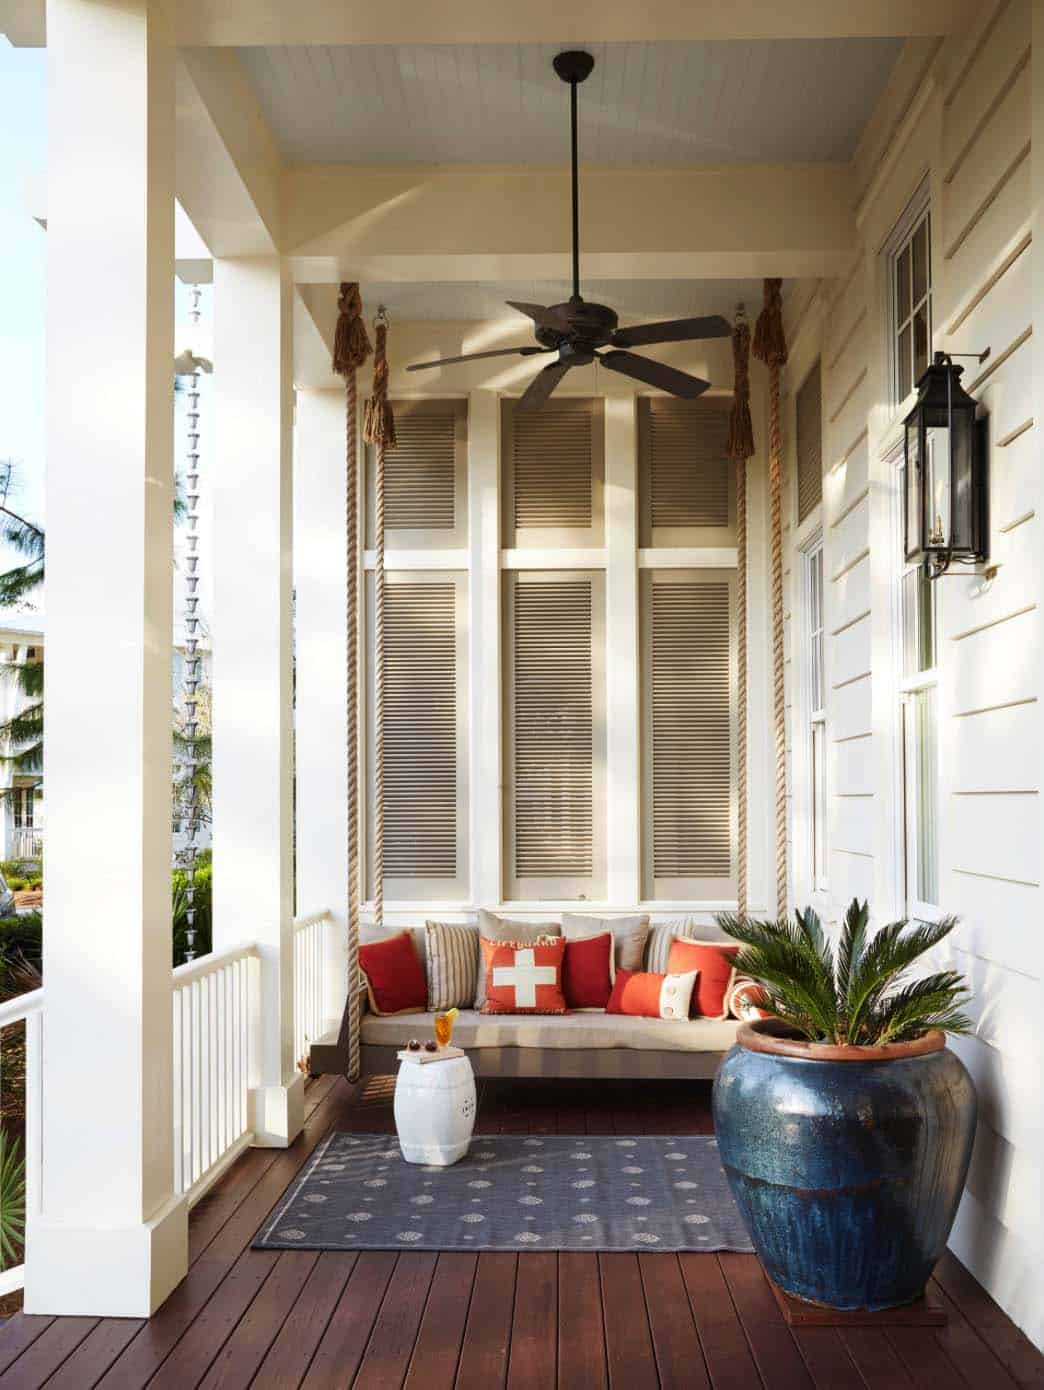 26 Incredibly Relaxing Swinging Bed Ideas For Your Porch